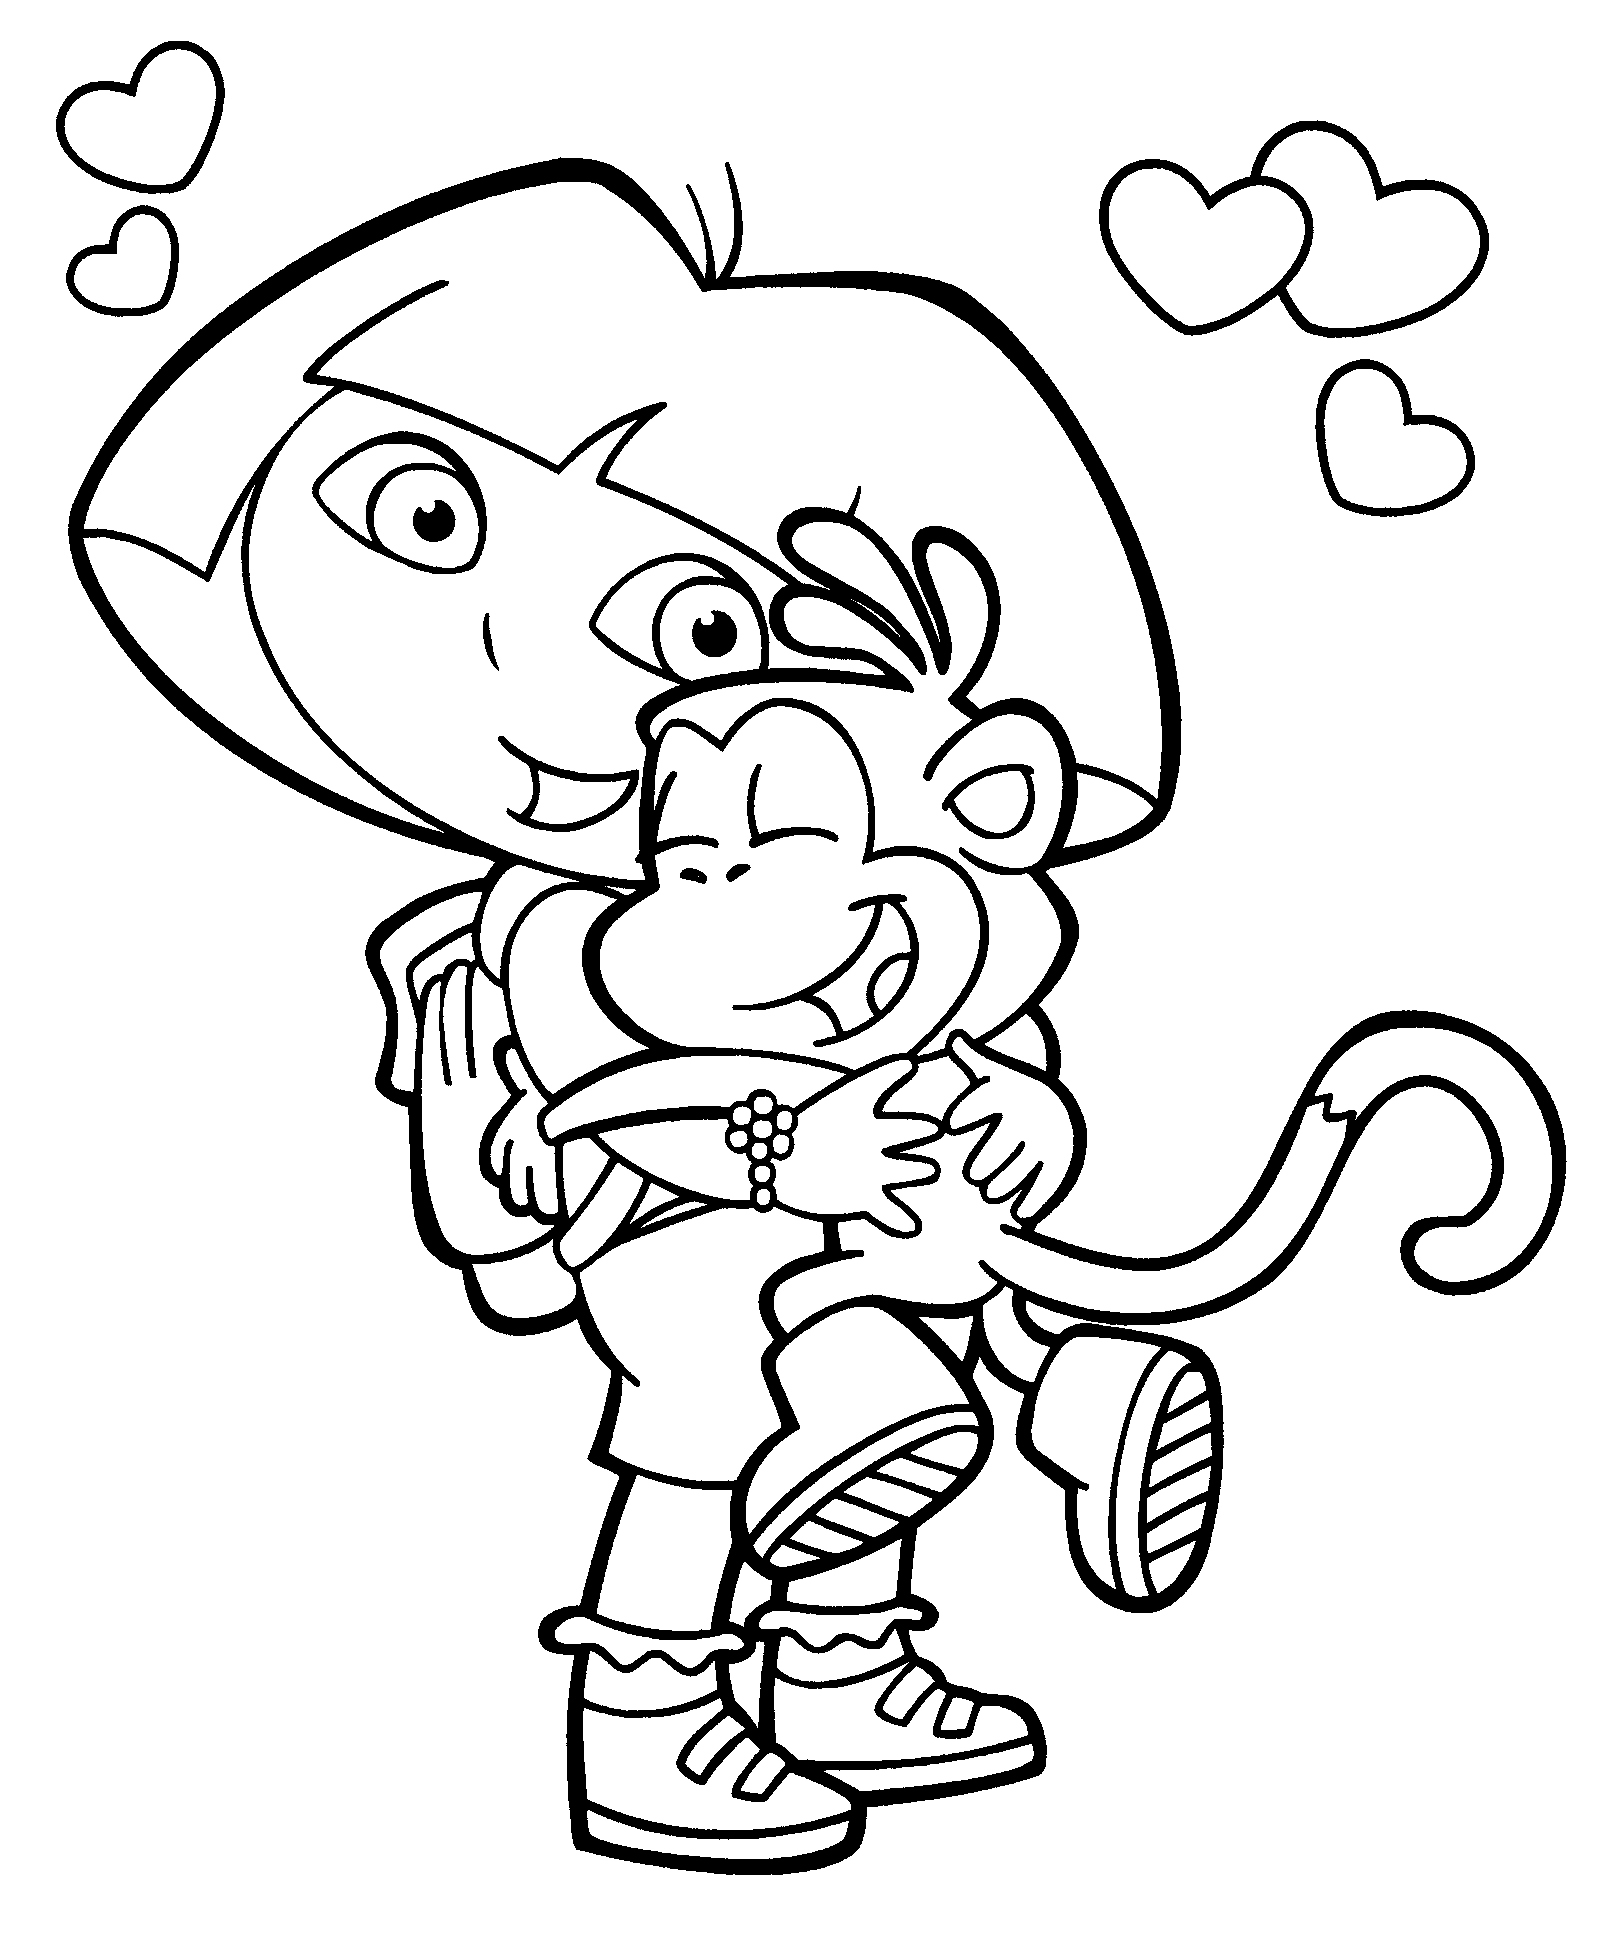 Dora Boots coloring page Coloring Pages Pinterest Birthdays